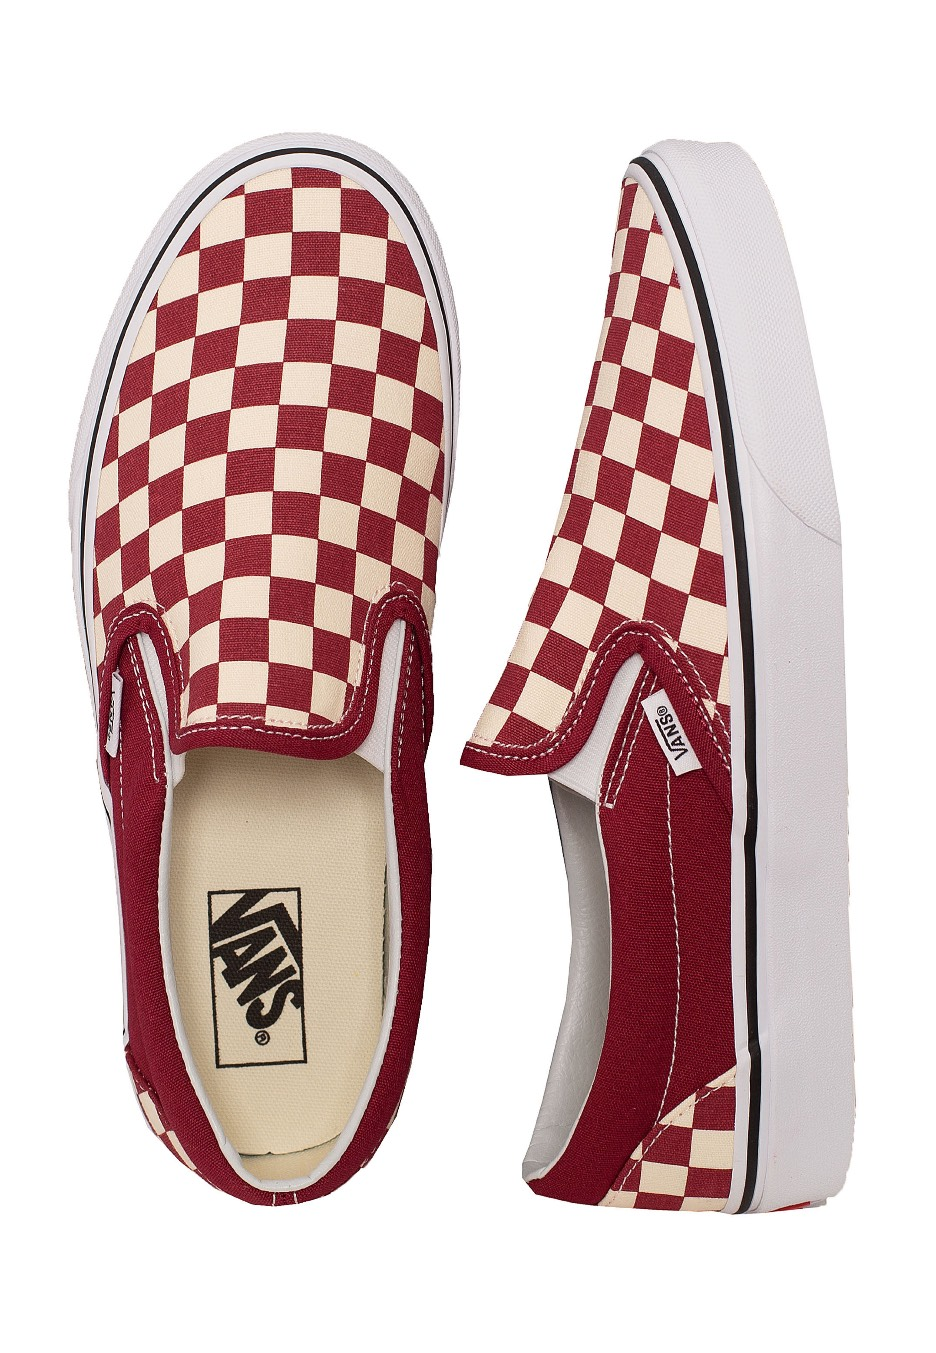 3ac11659168e Vans - Classic Slip-On Checkerboard Rumba Red White - Shoes - Impericon.com  Worldwide